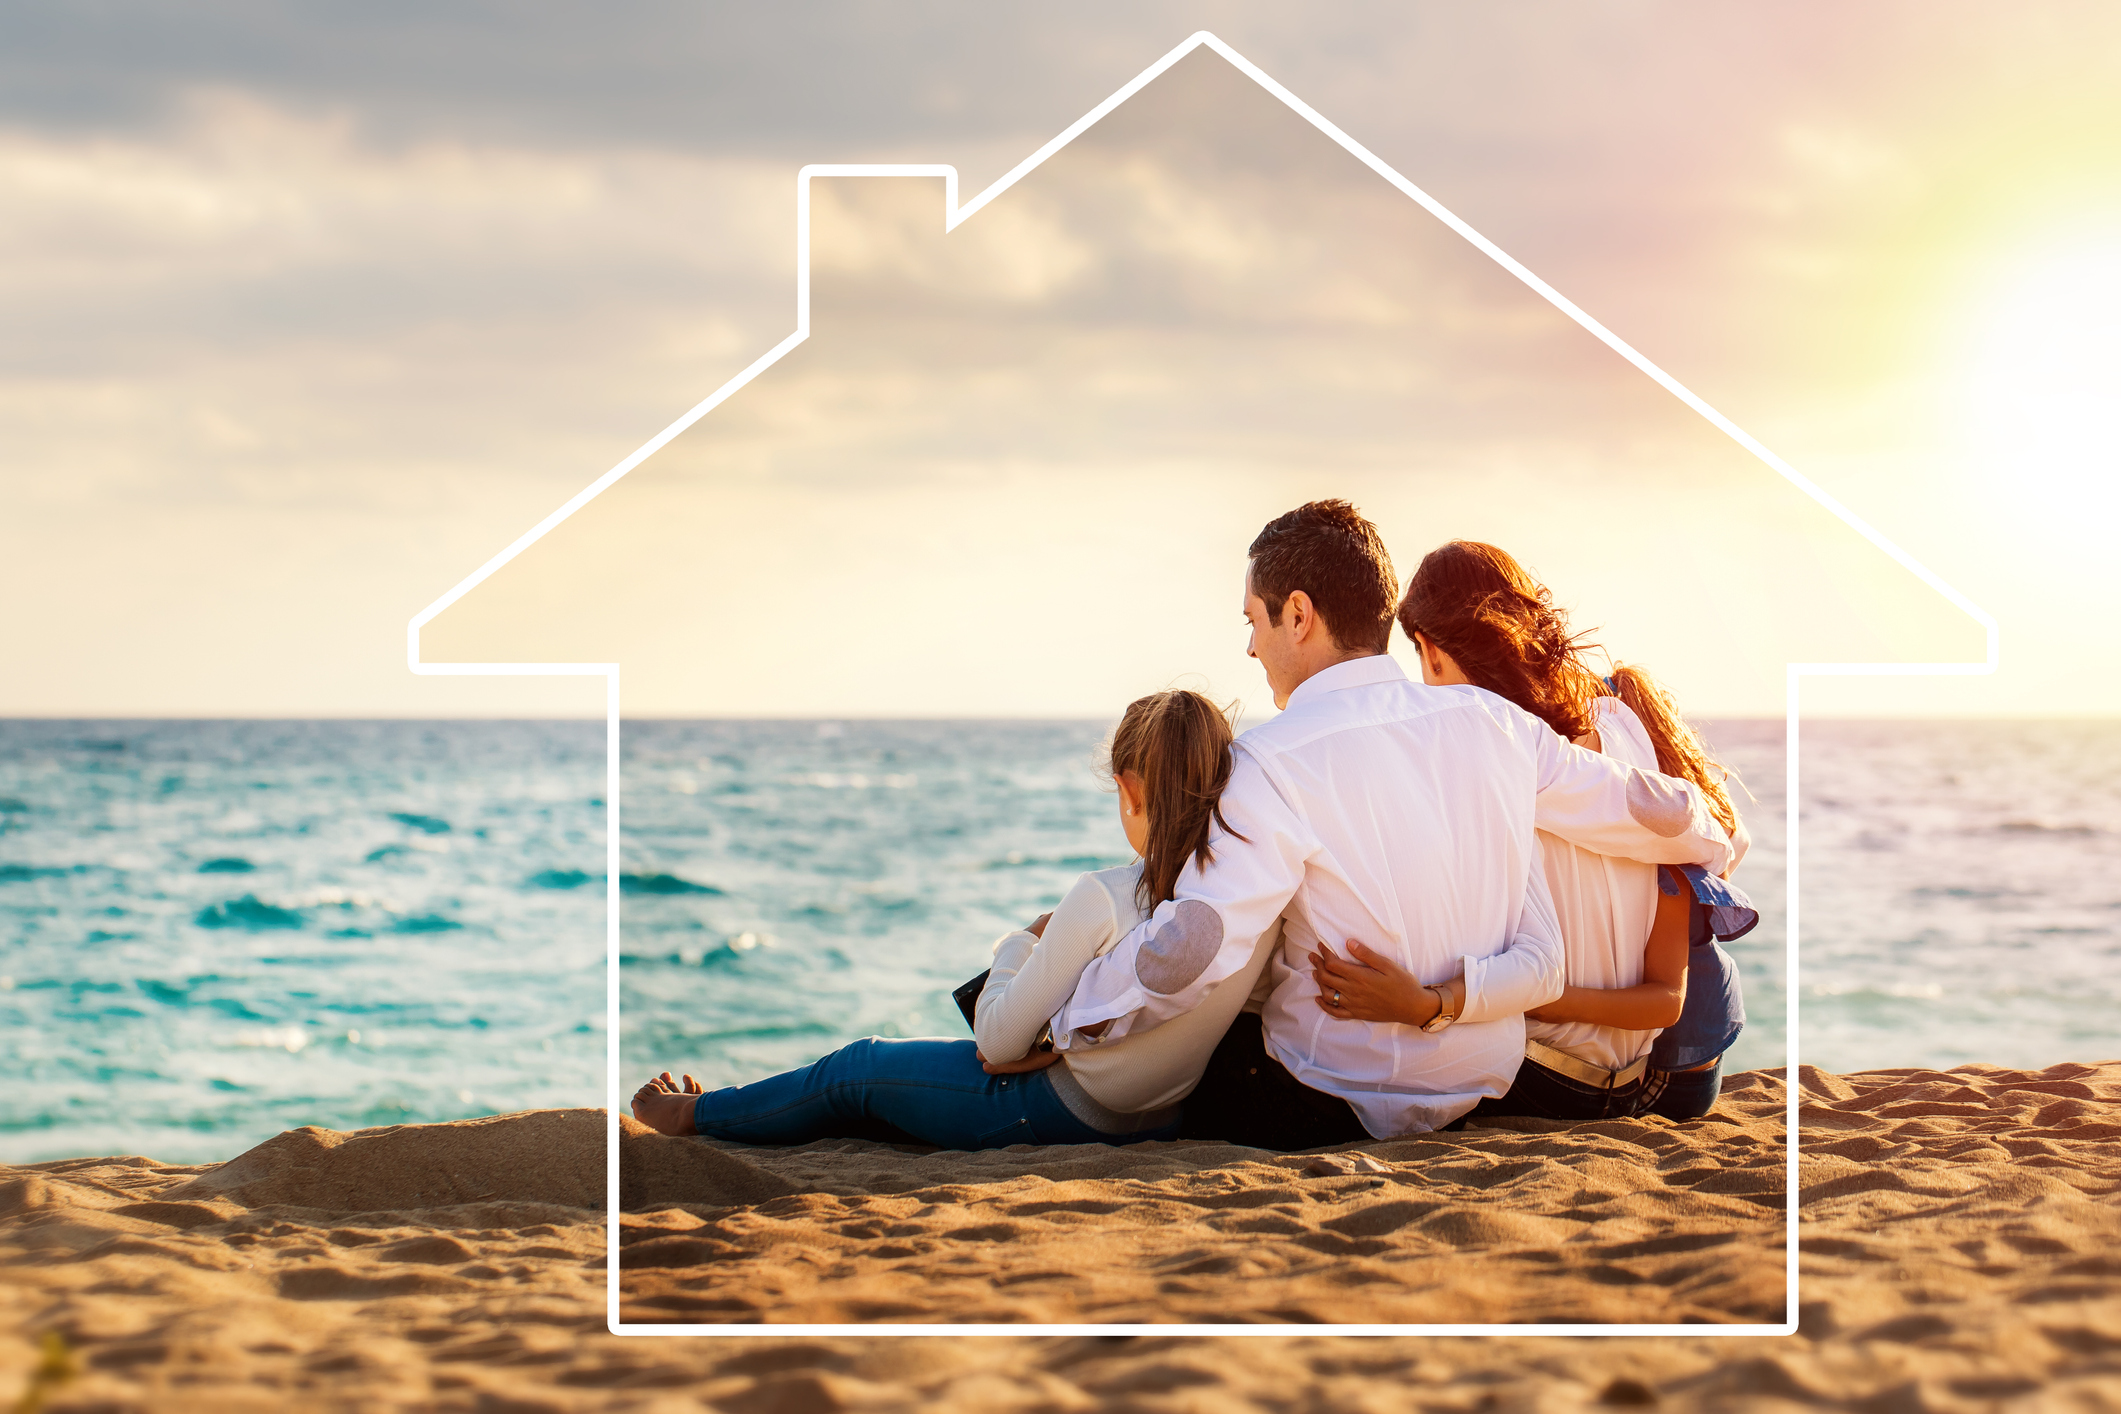 Cautious optimism within the housing market